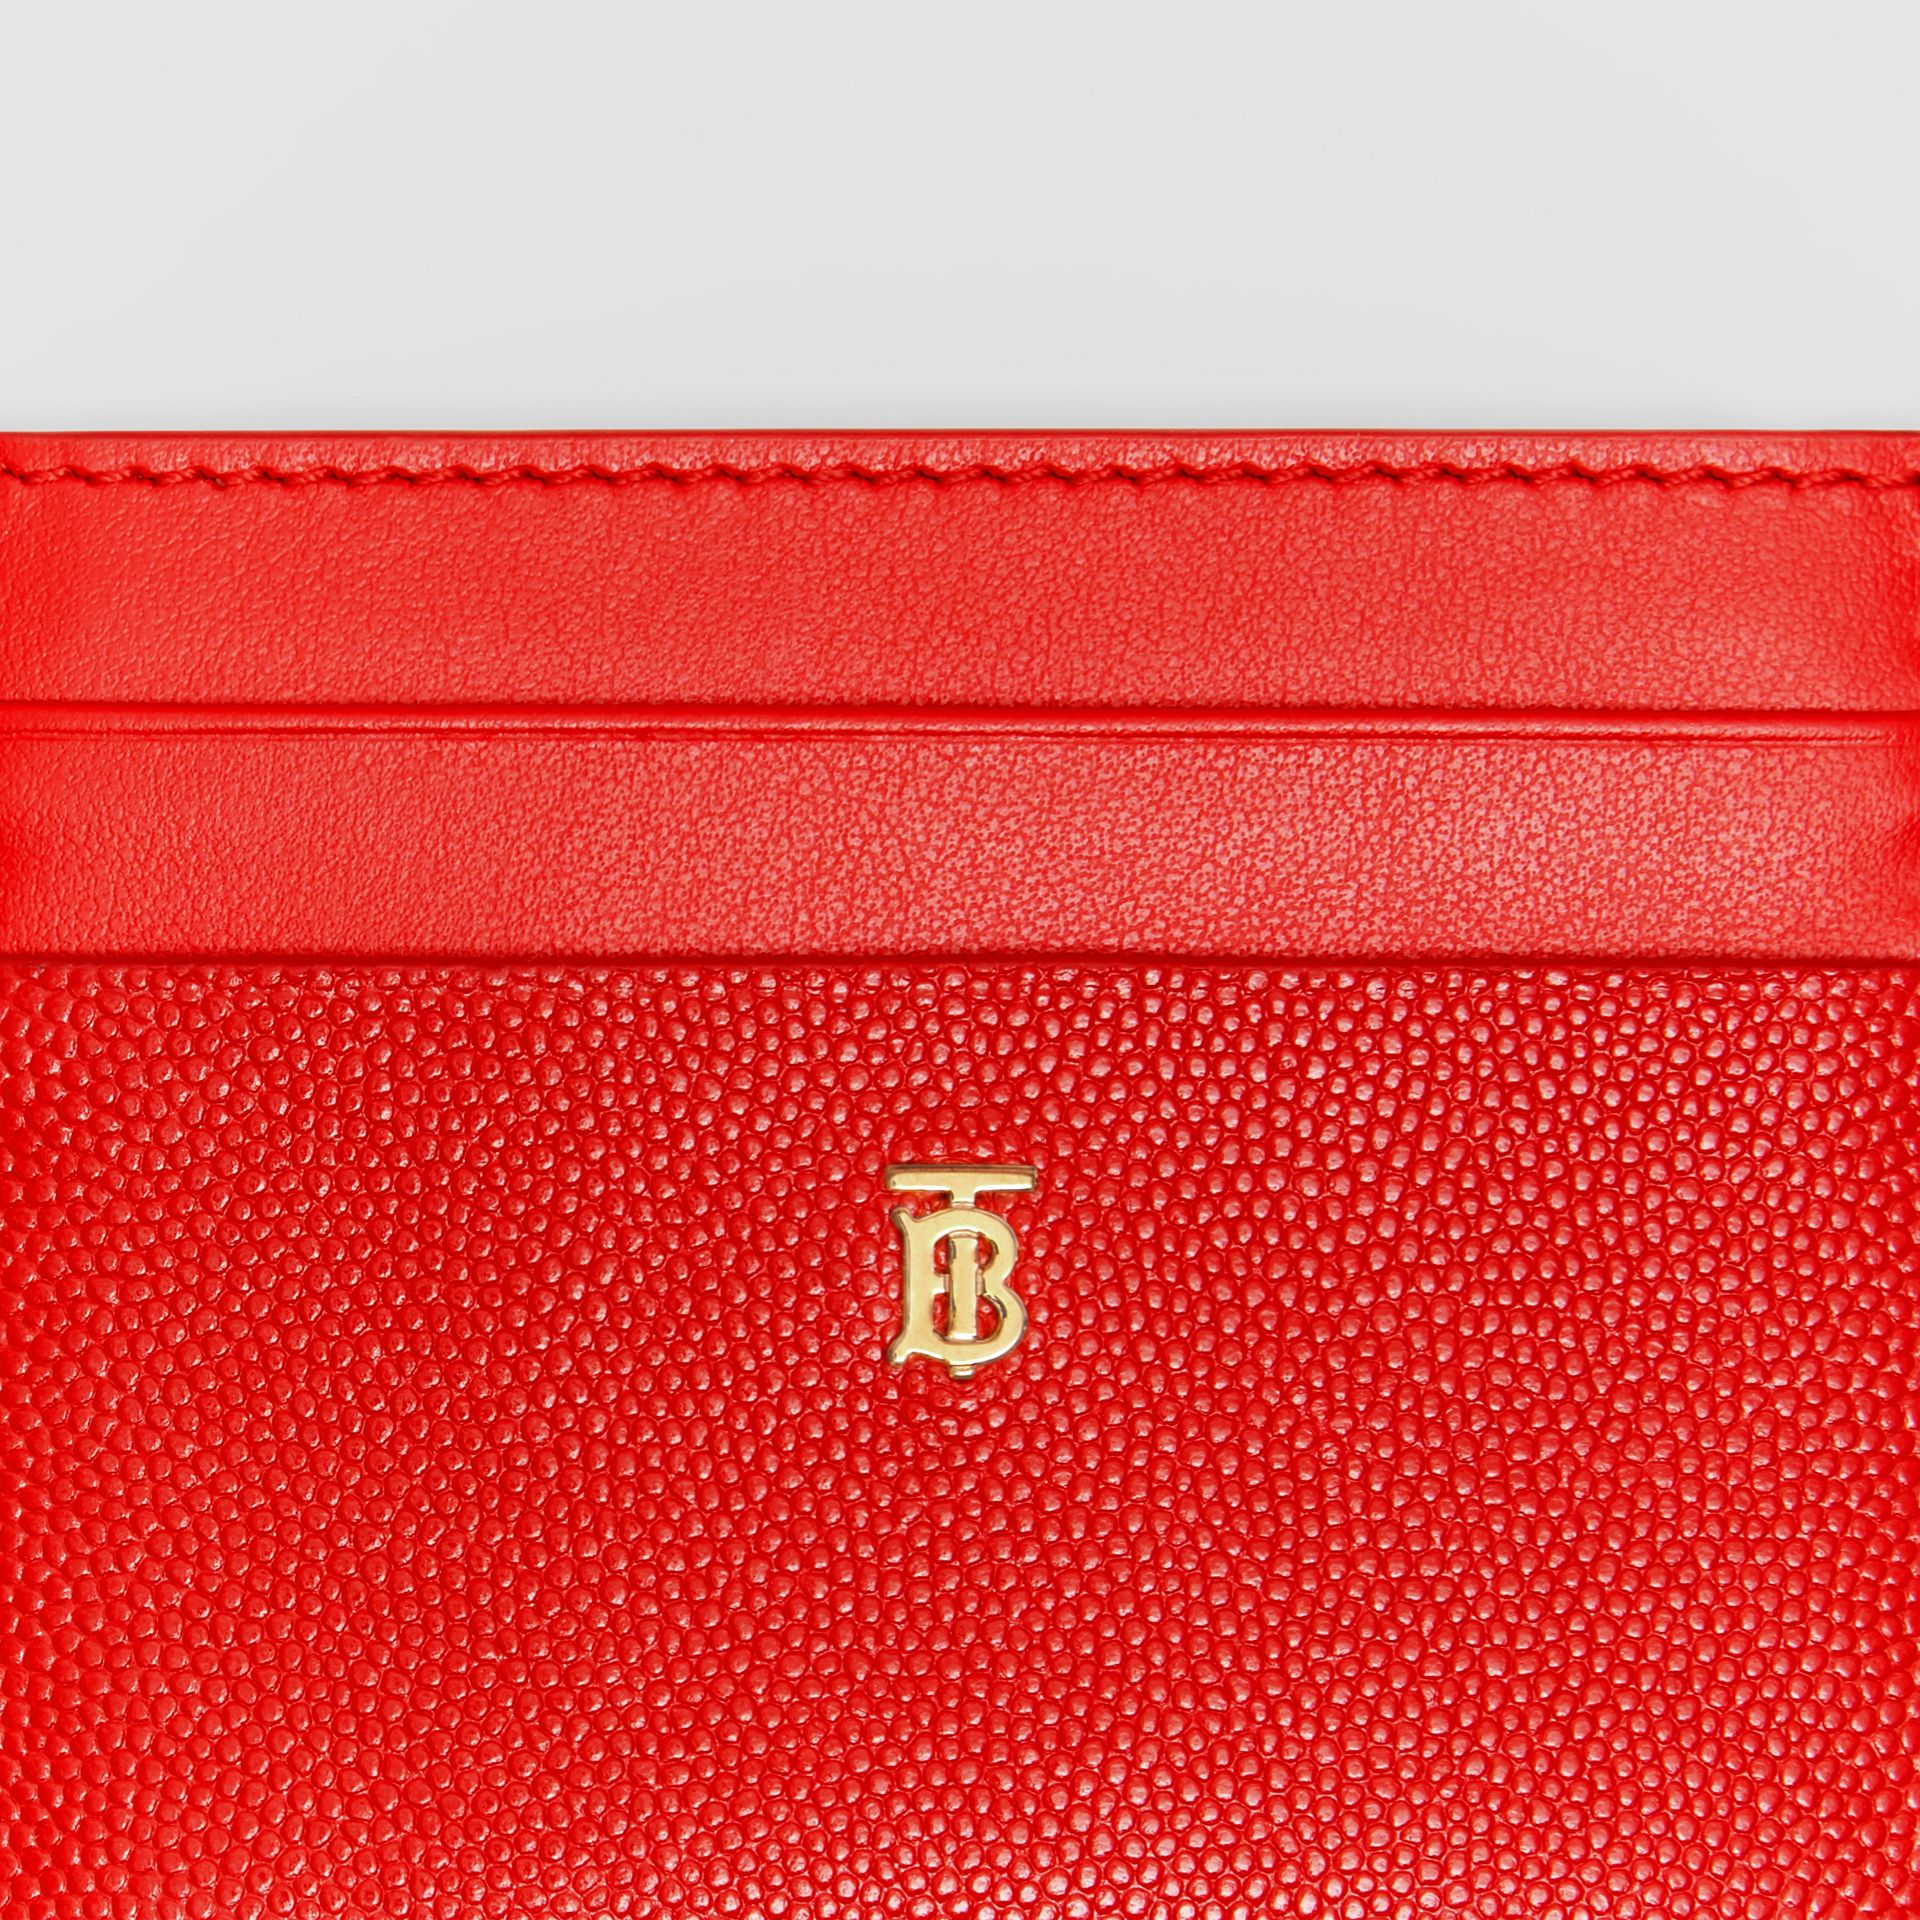 Monogram Motif Leather Card Case in Bright Red - Women | Burberry - gallery image 1